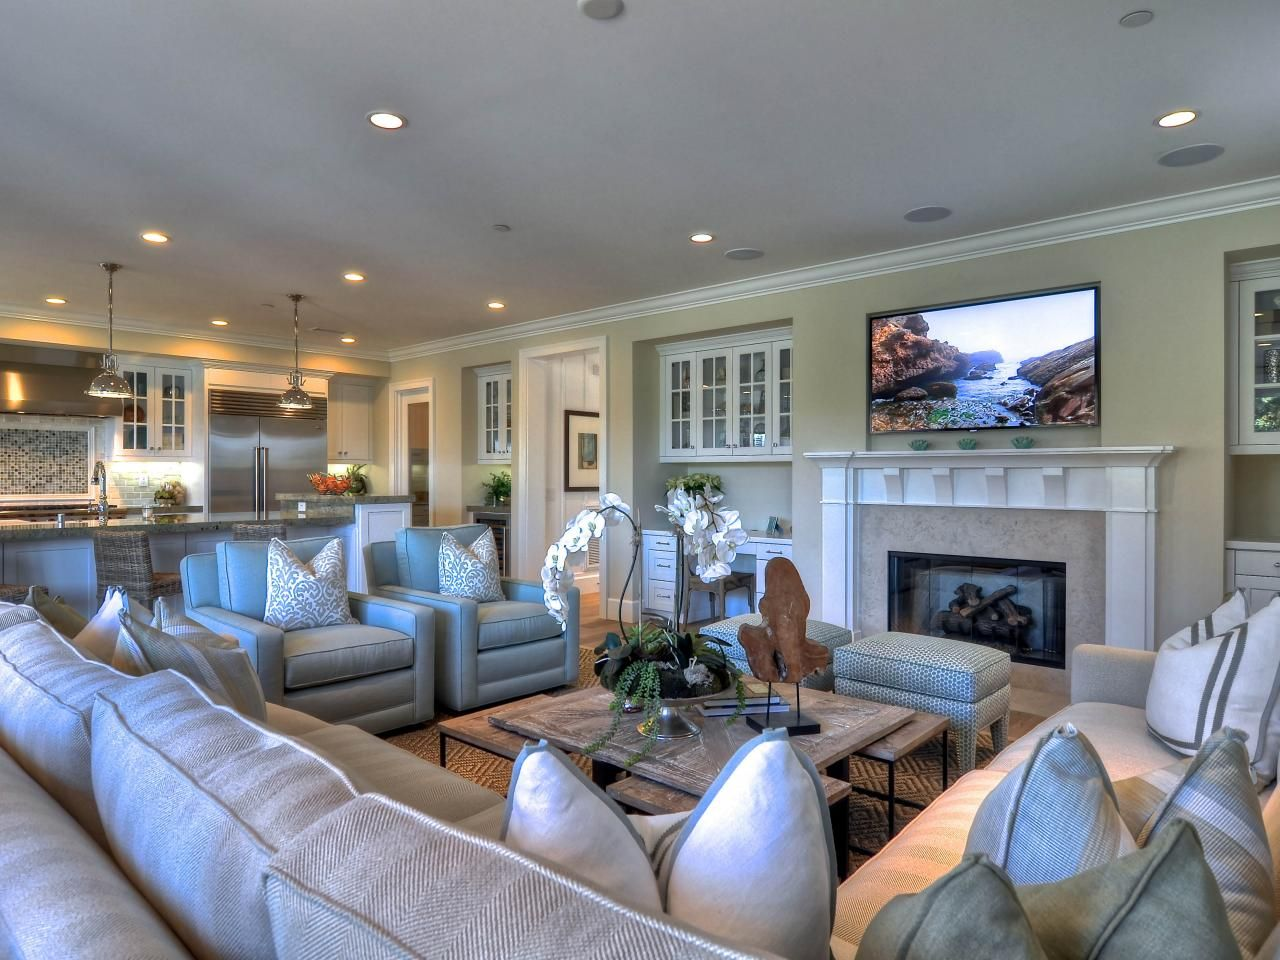 Coastal decor is found in the details in this spacious for Large living room design layout